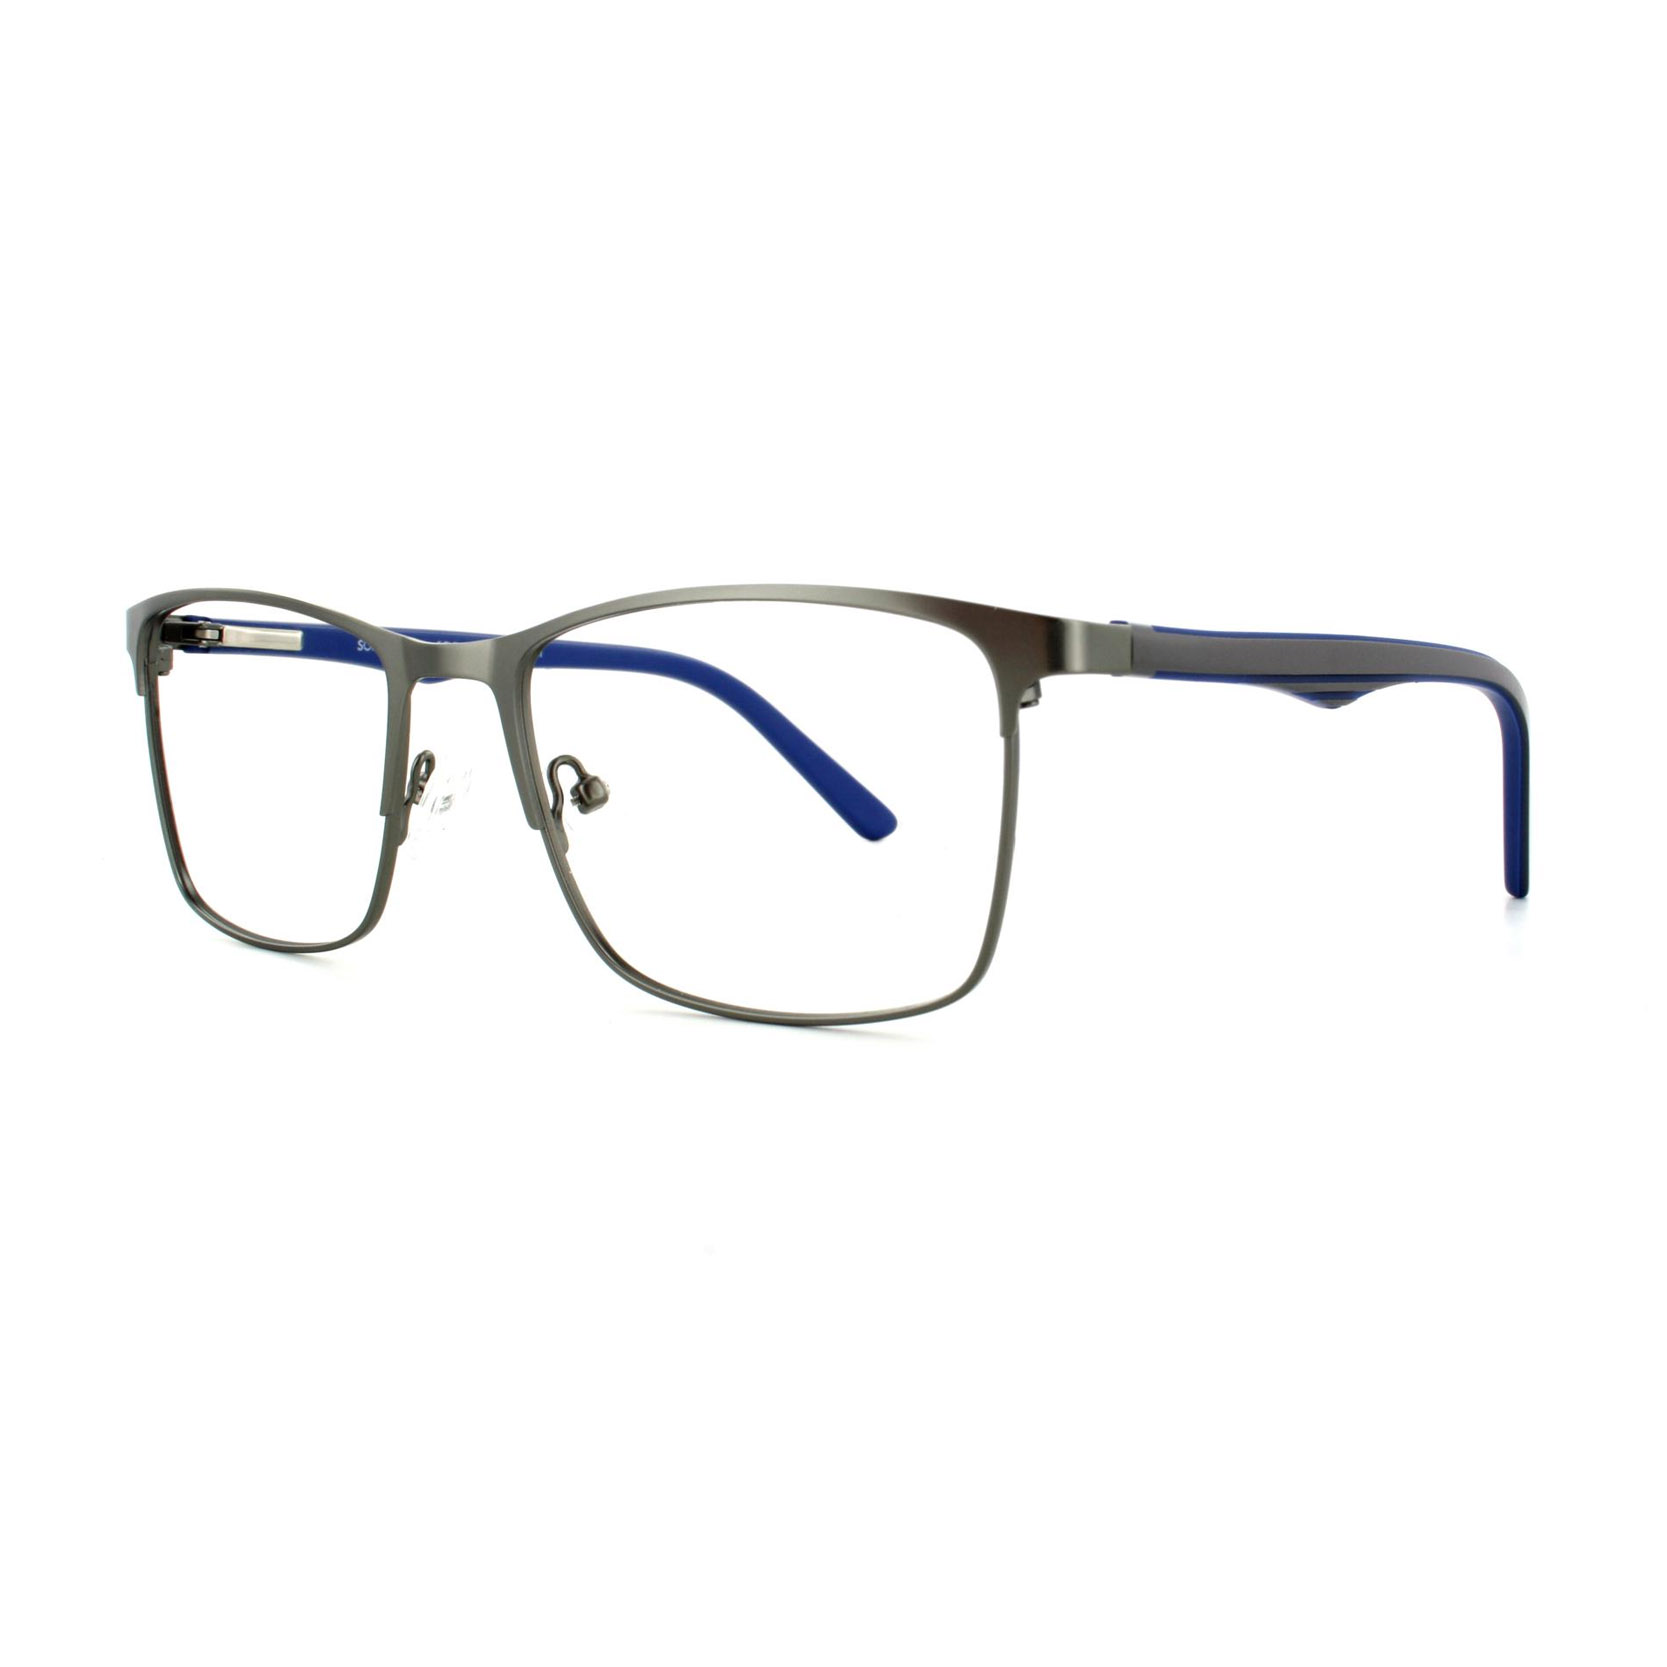 Robert and Sons Optical Limited